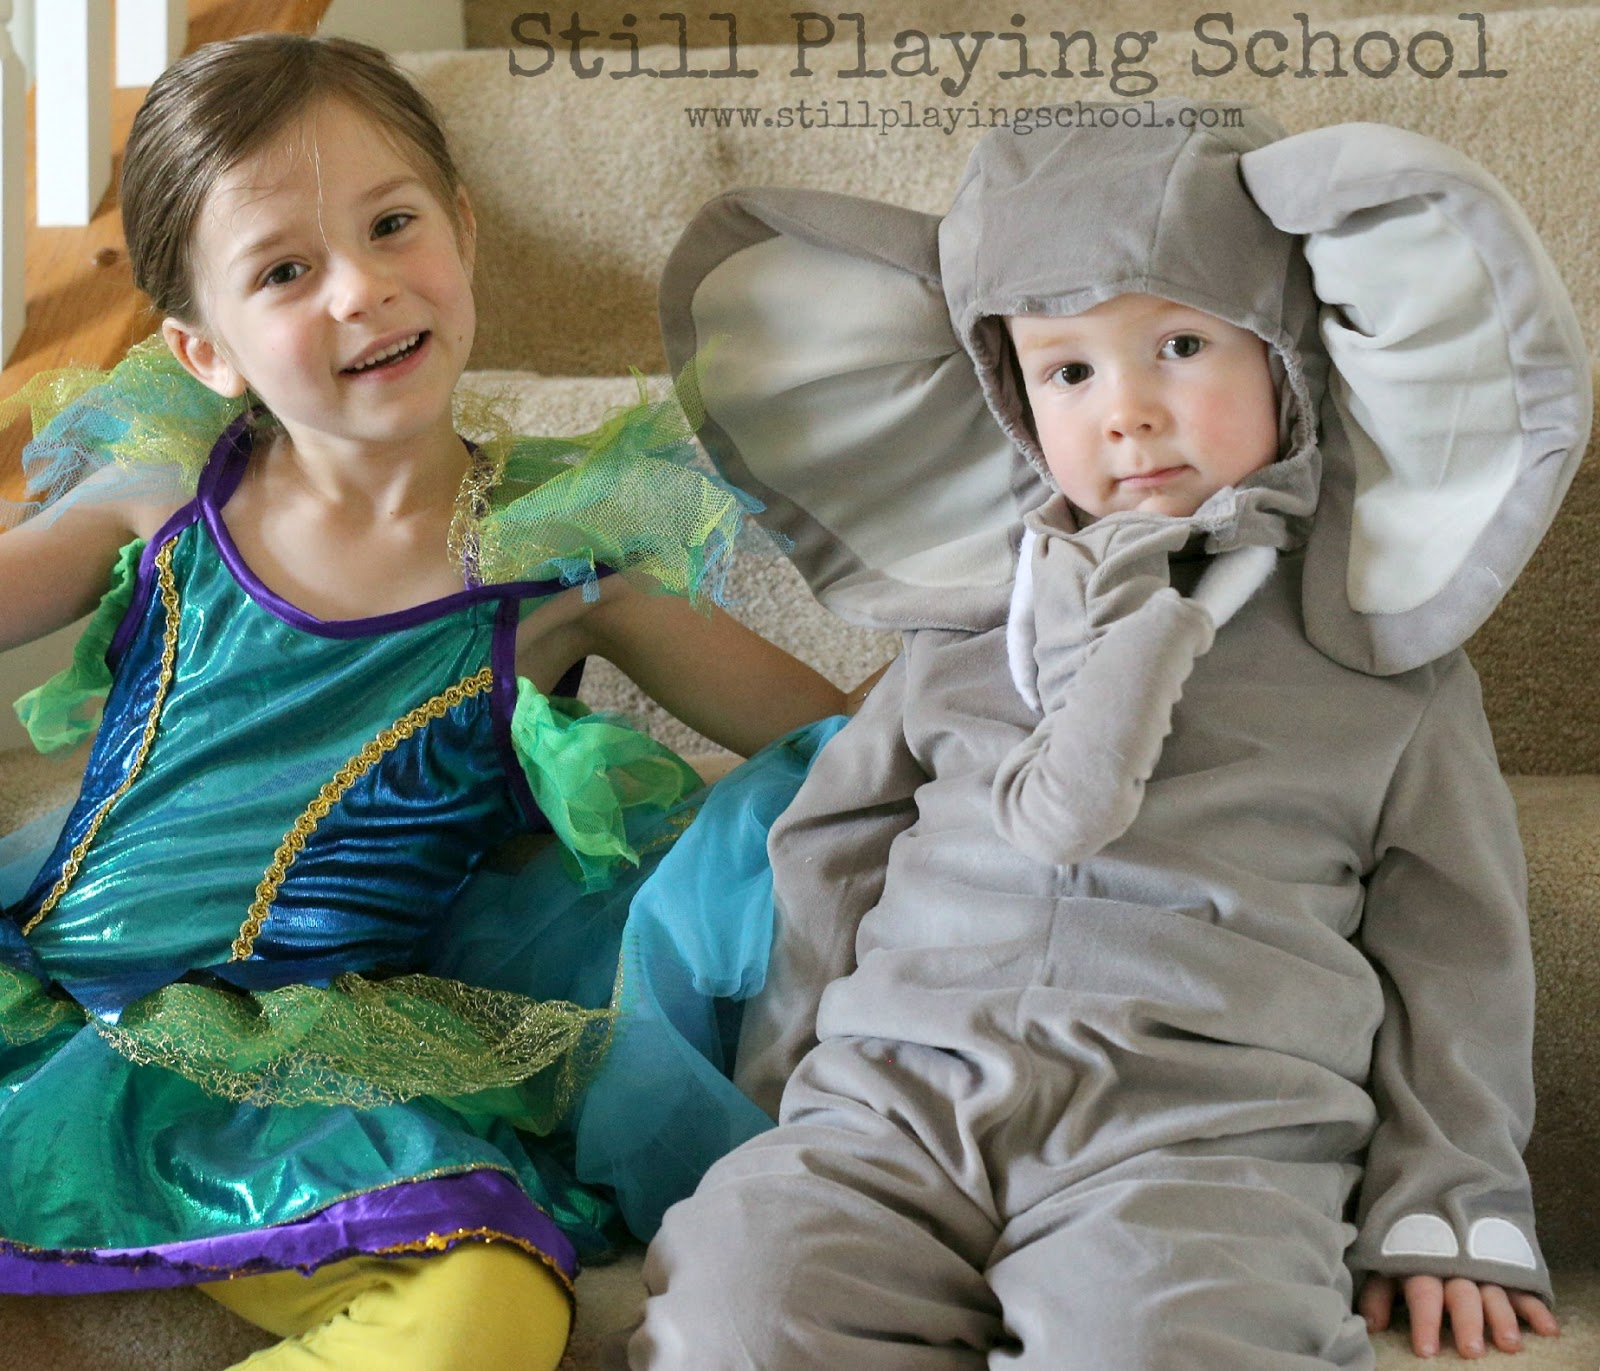 Dress Up Pretend Play Images On: The Importance Of Everyday Dress Up Play